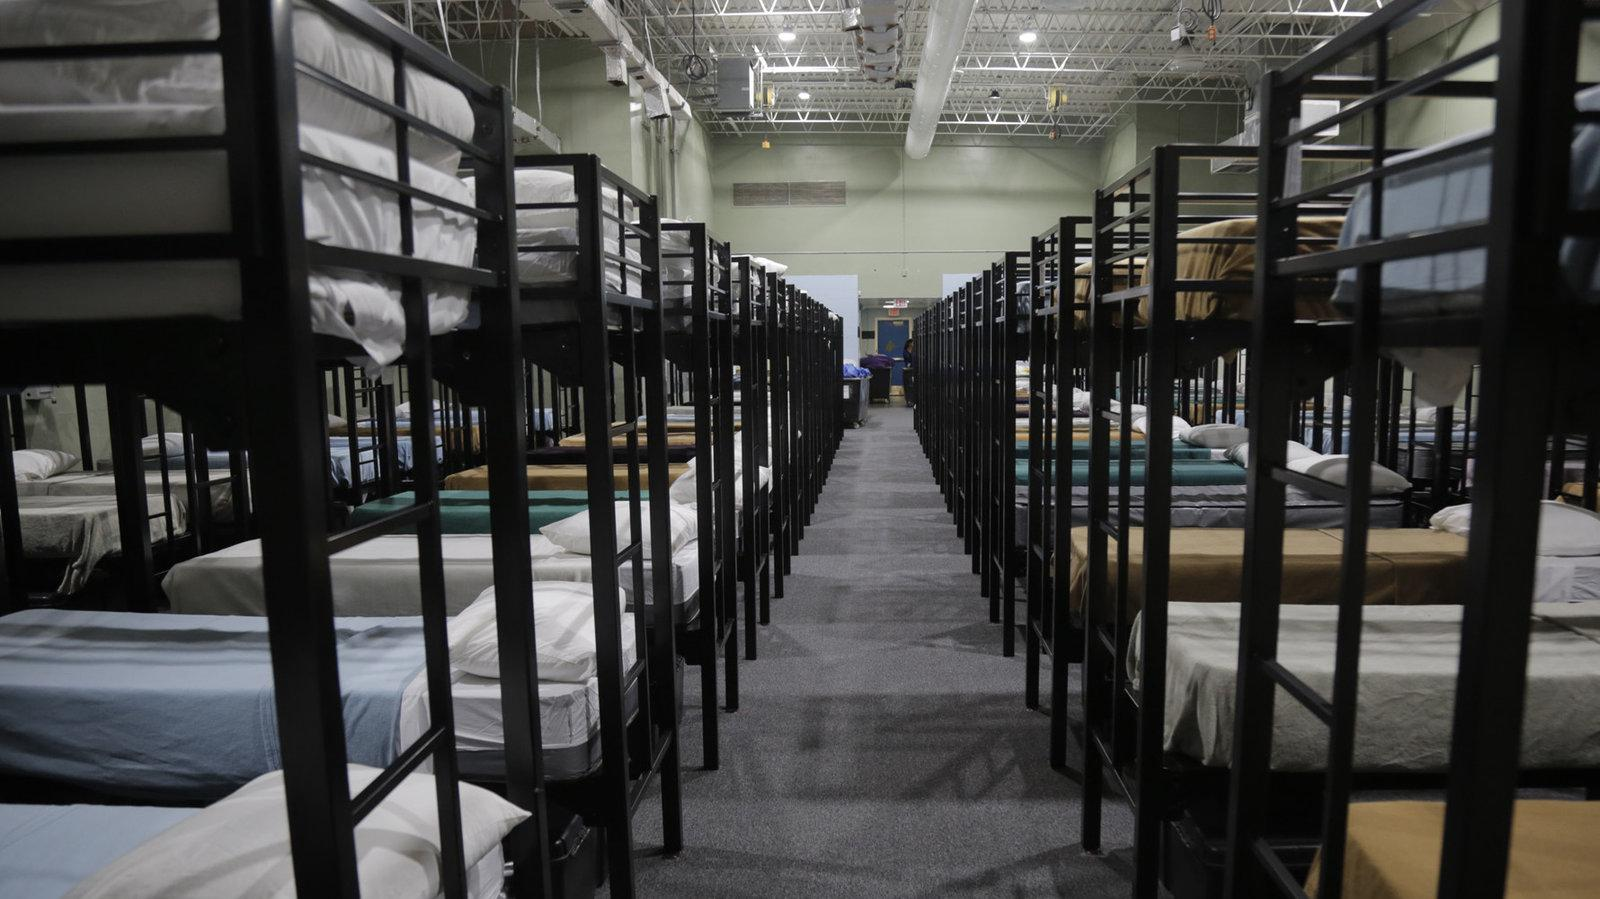 Dormitory beds for migrant children